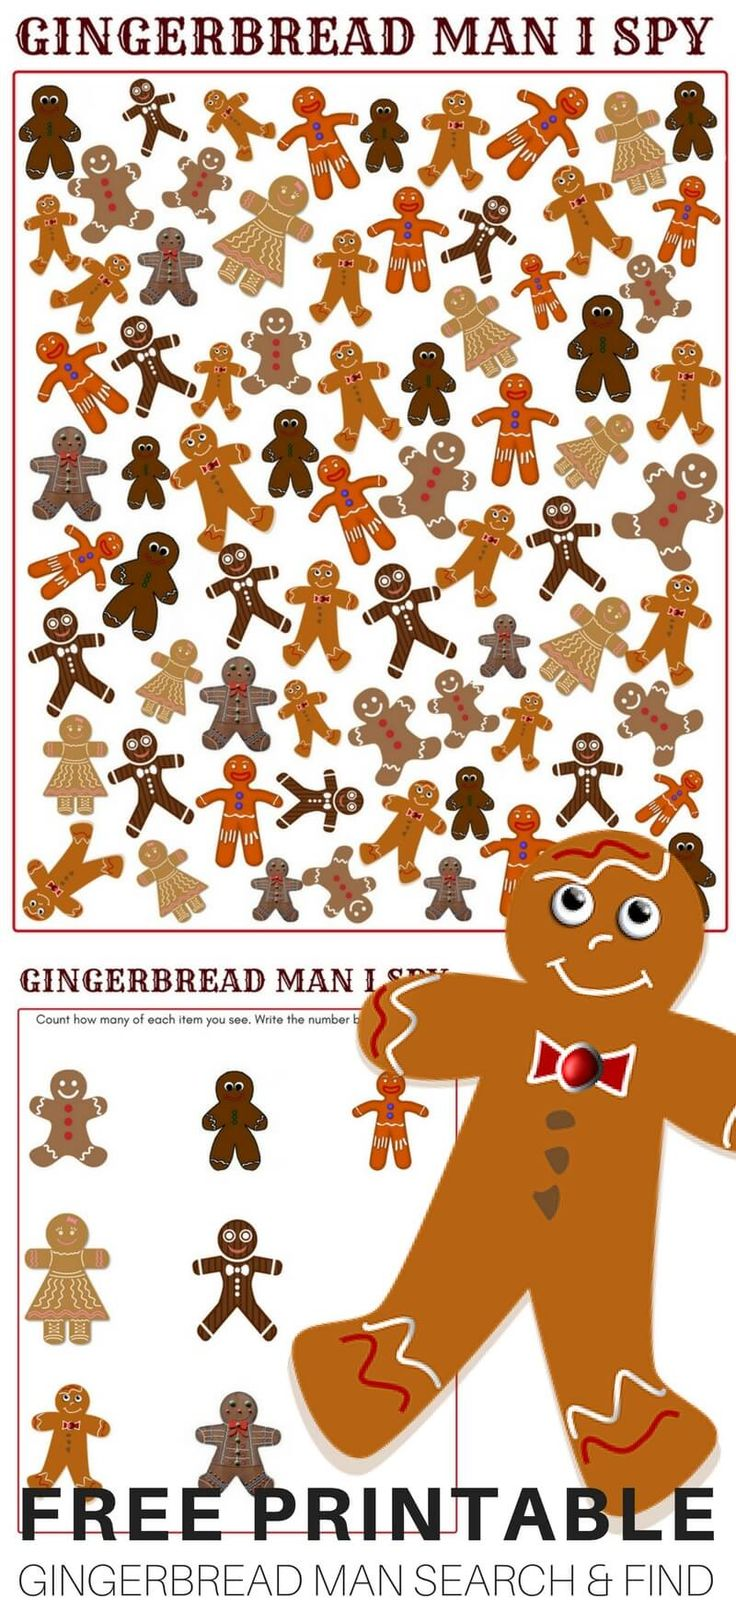 Printable Gingerbread Man Game and I Spy Printable Search and Find Game